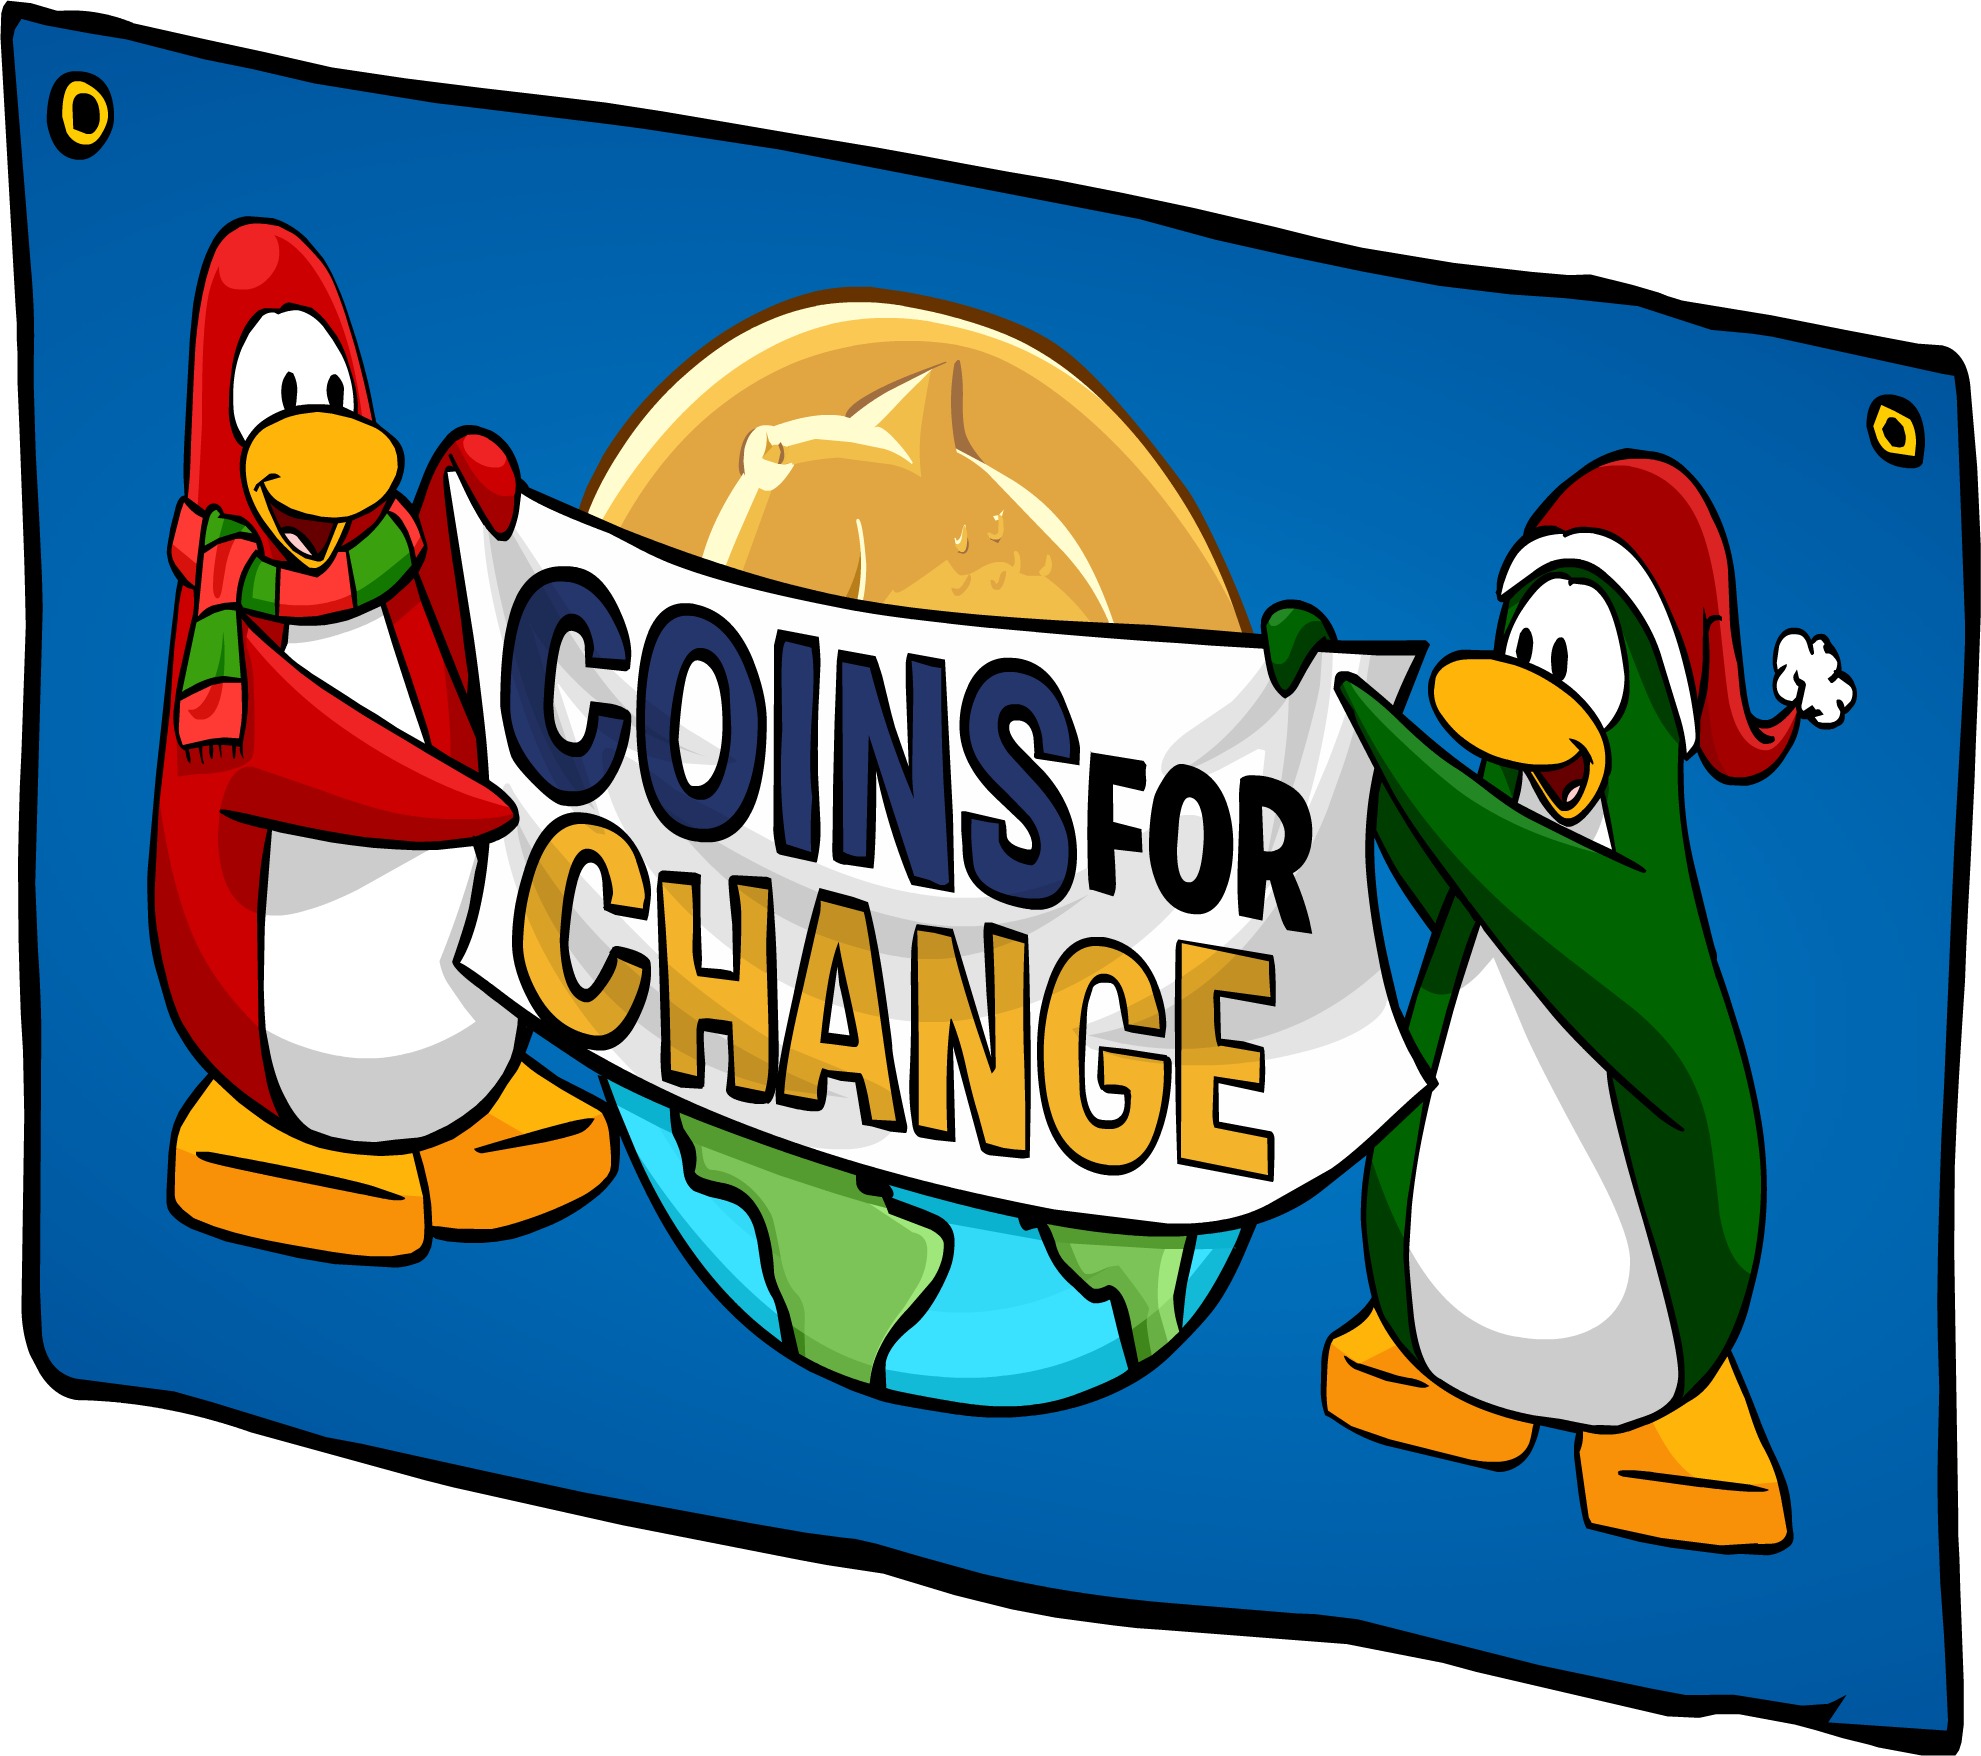 Coins clipart sprite. Image for change banner